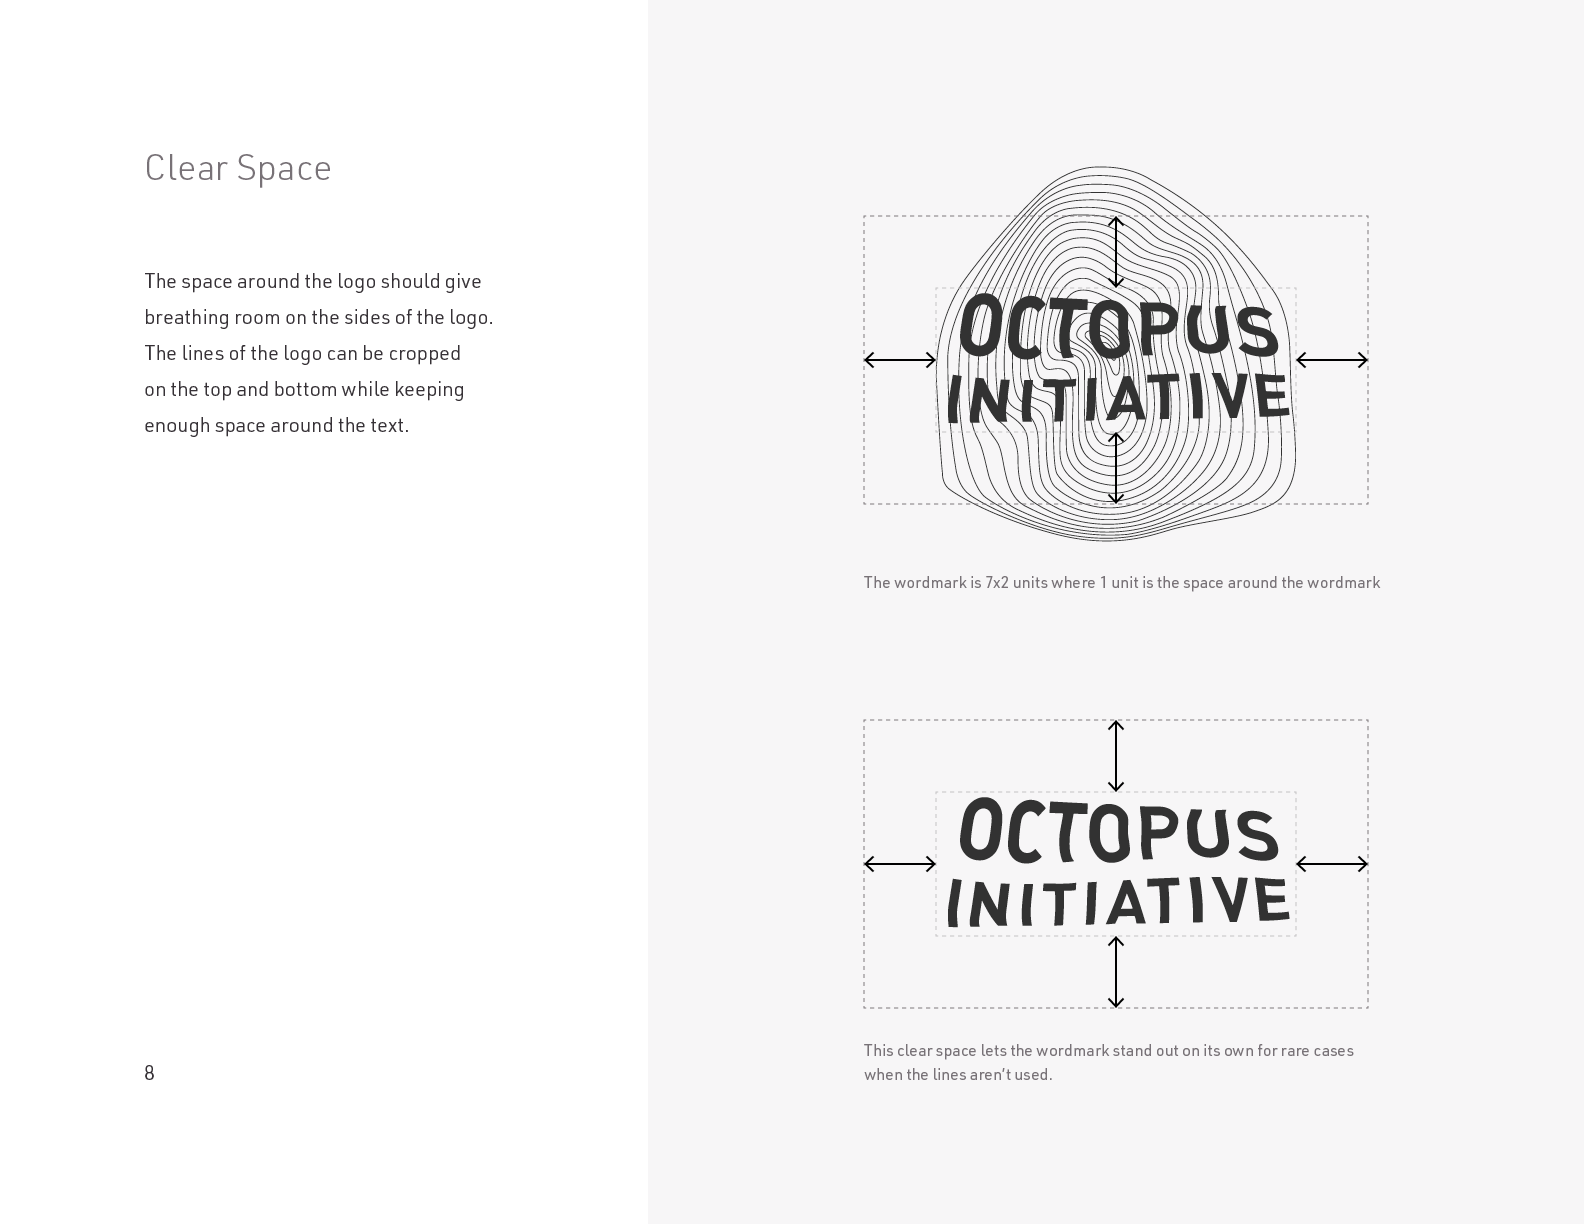 The Octopus Initiative Brand Guidelines - Page 8